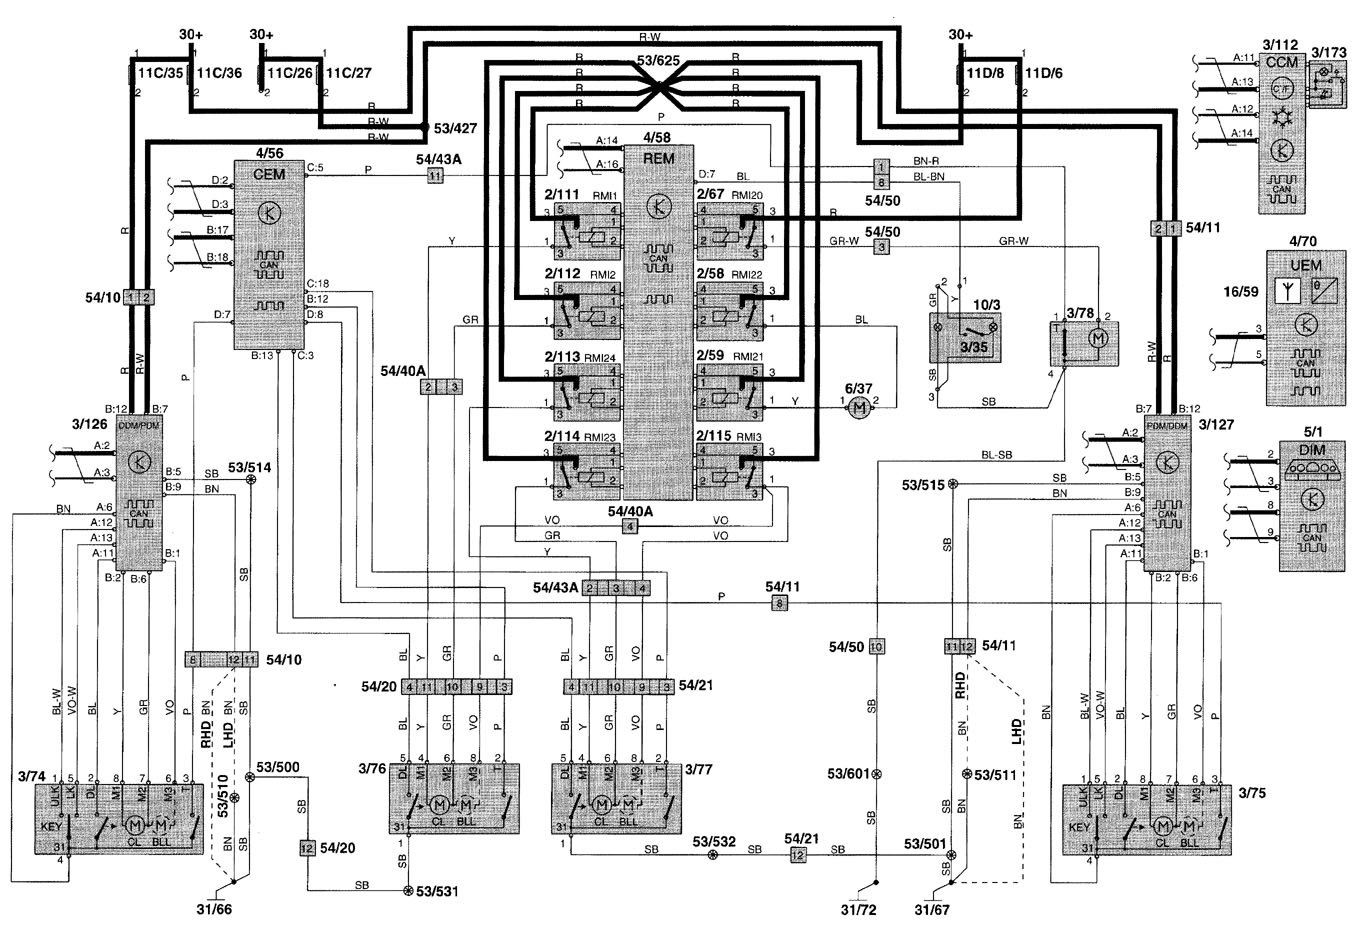 Volvo V70 Wiring Diagram 2001 - Data Wiring Pair sum-repetition -  sum-repetition.newmorpheus.it | Volvo V70 Ignition Wiring Diagram |  | newmorpheus.it